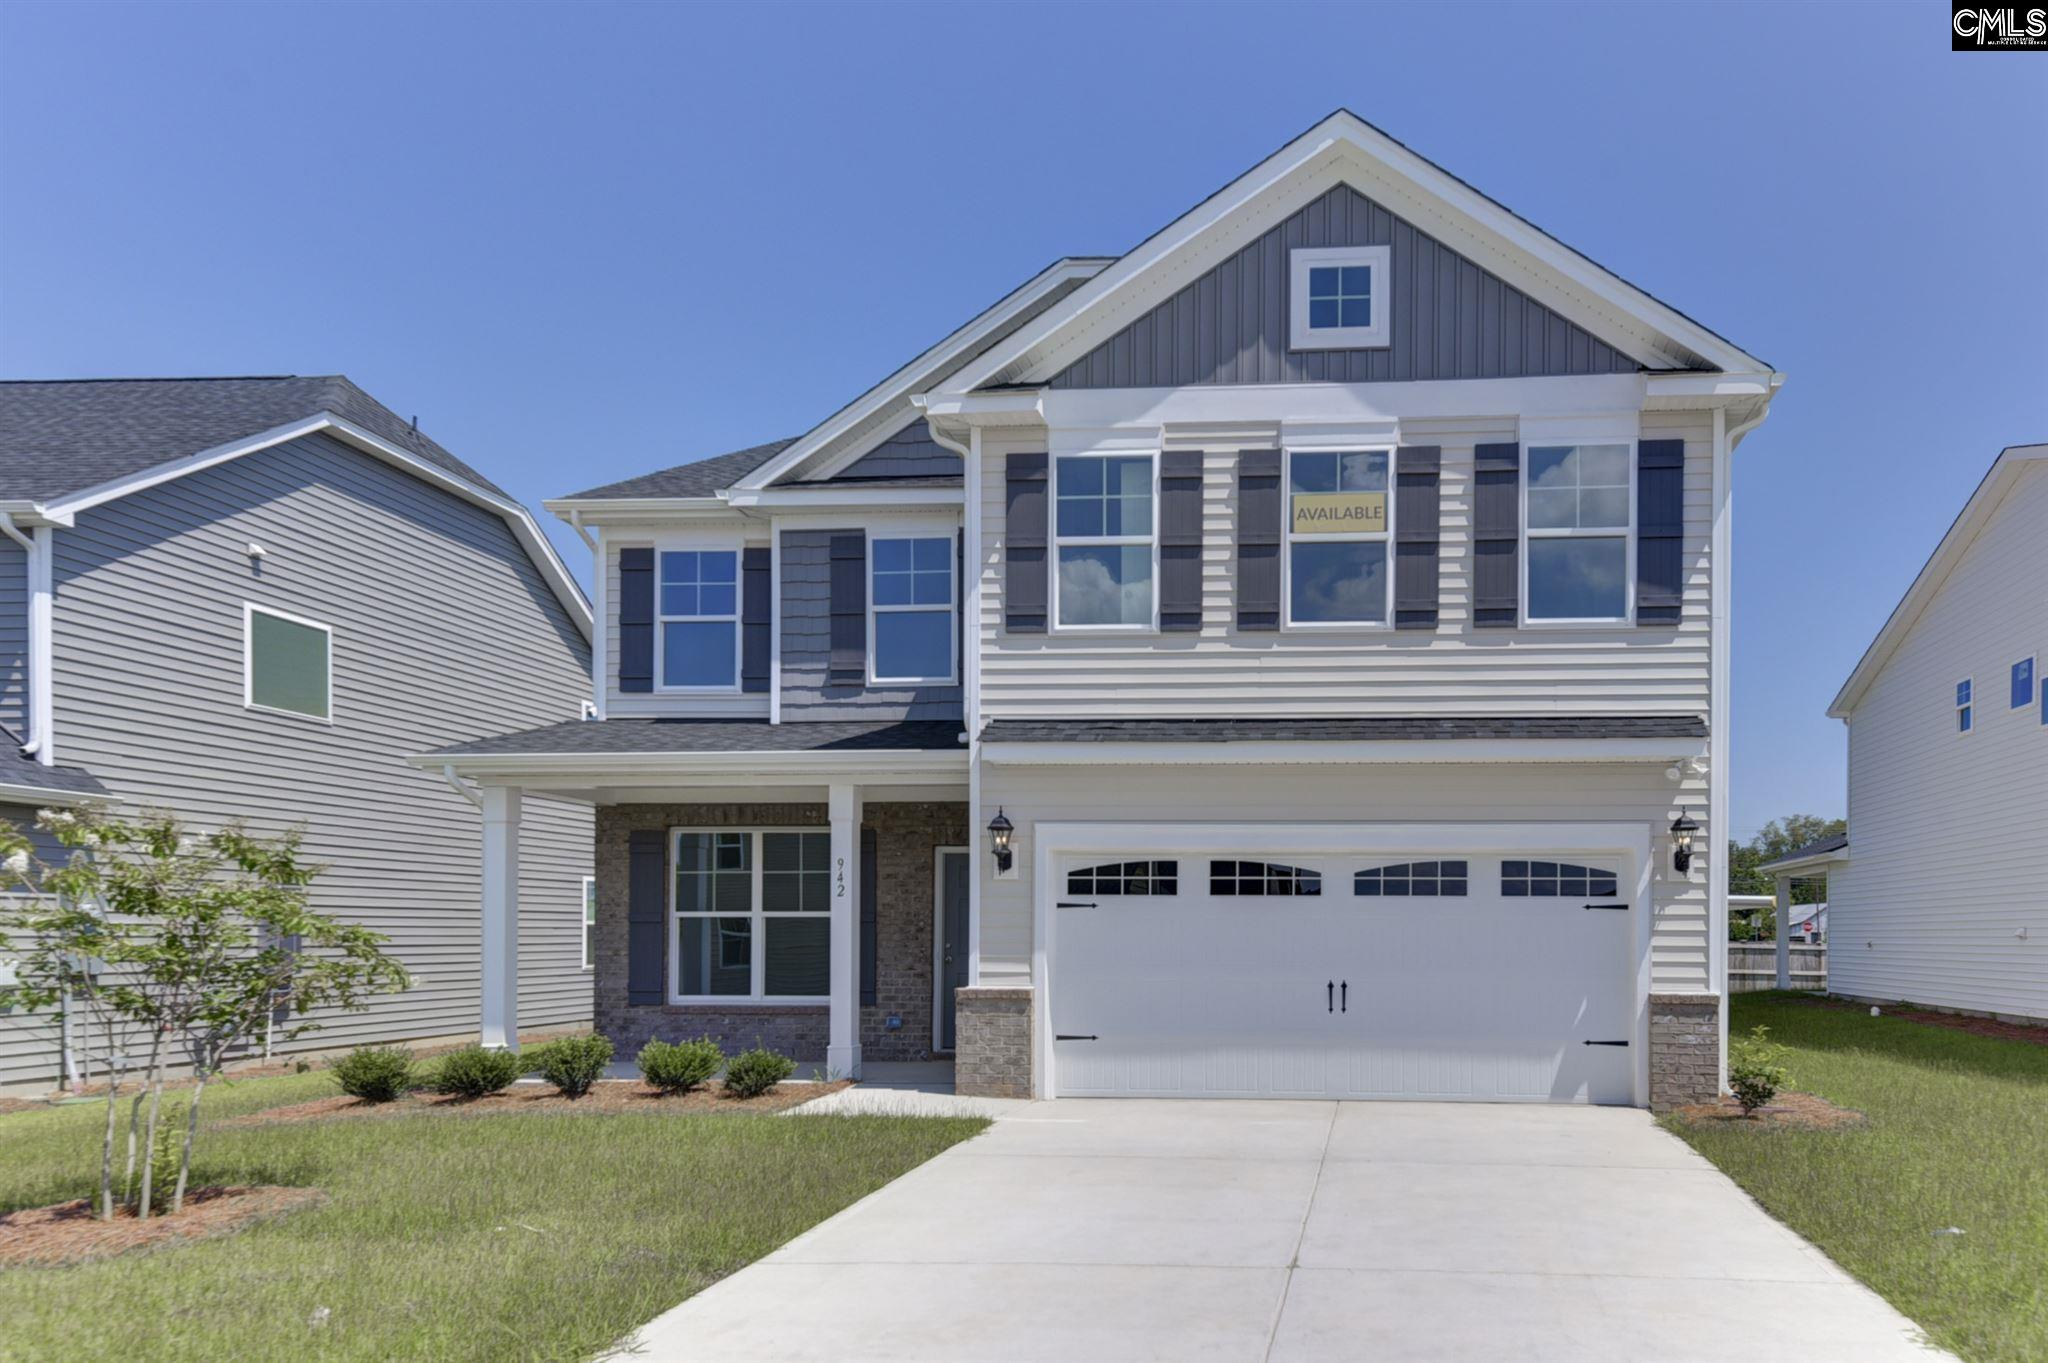 942 Taramore Lexington, SC 29072